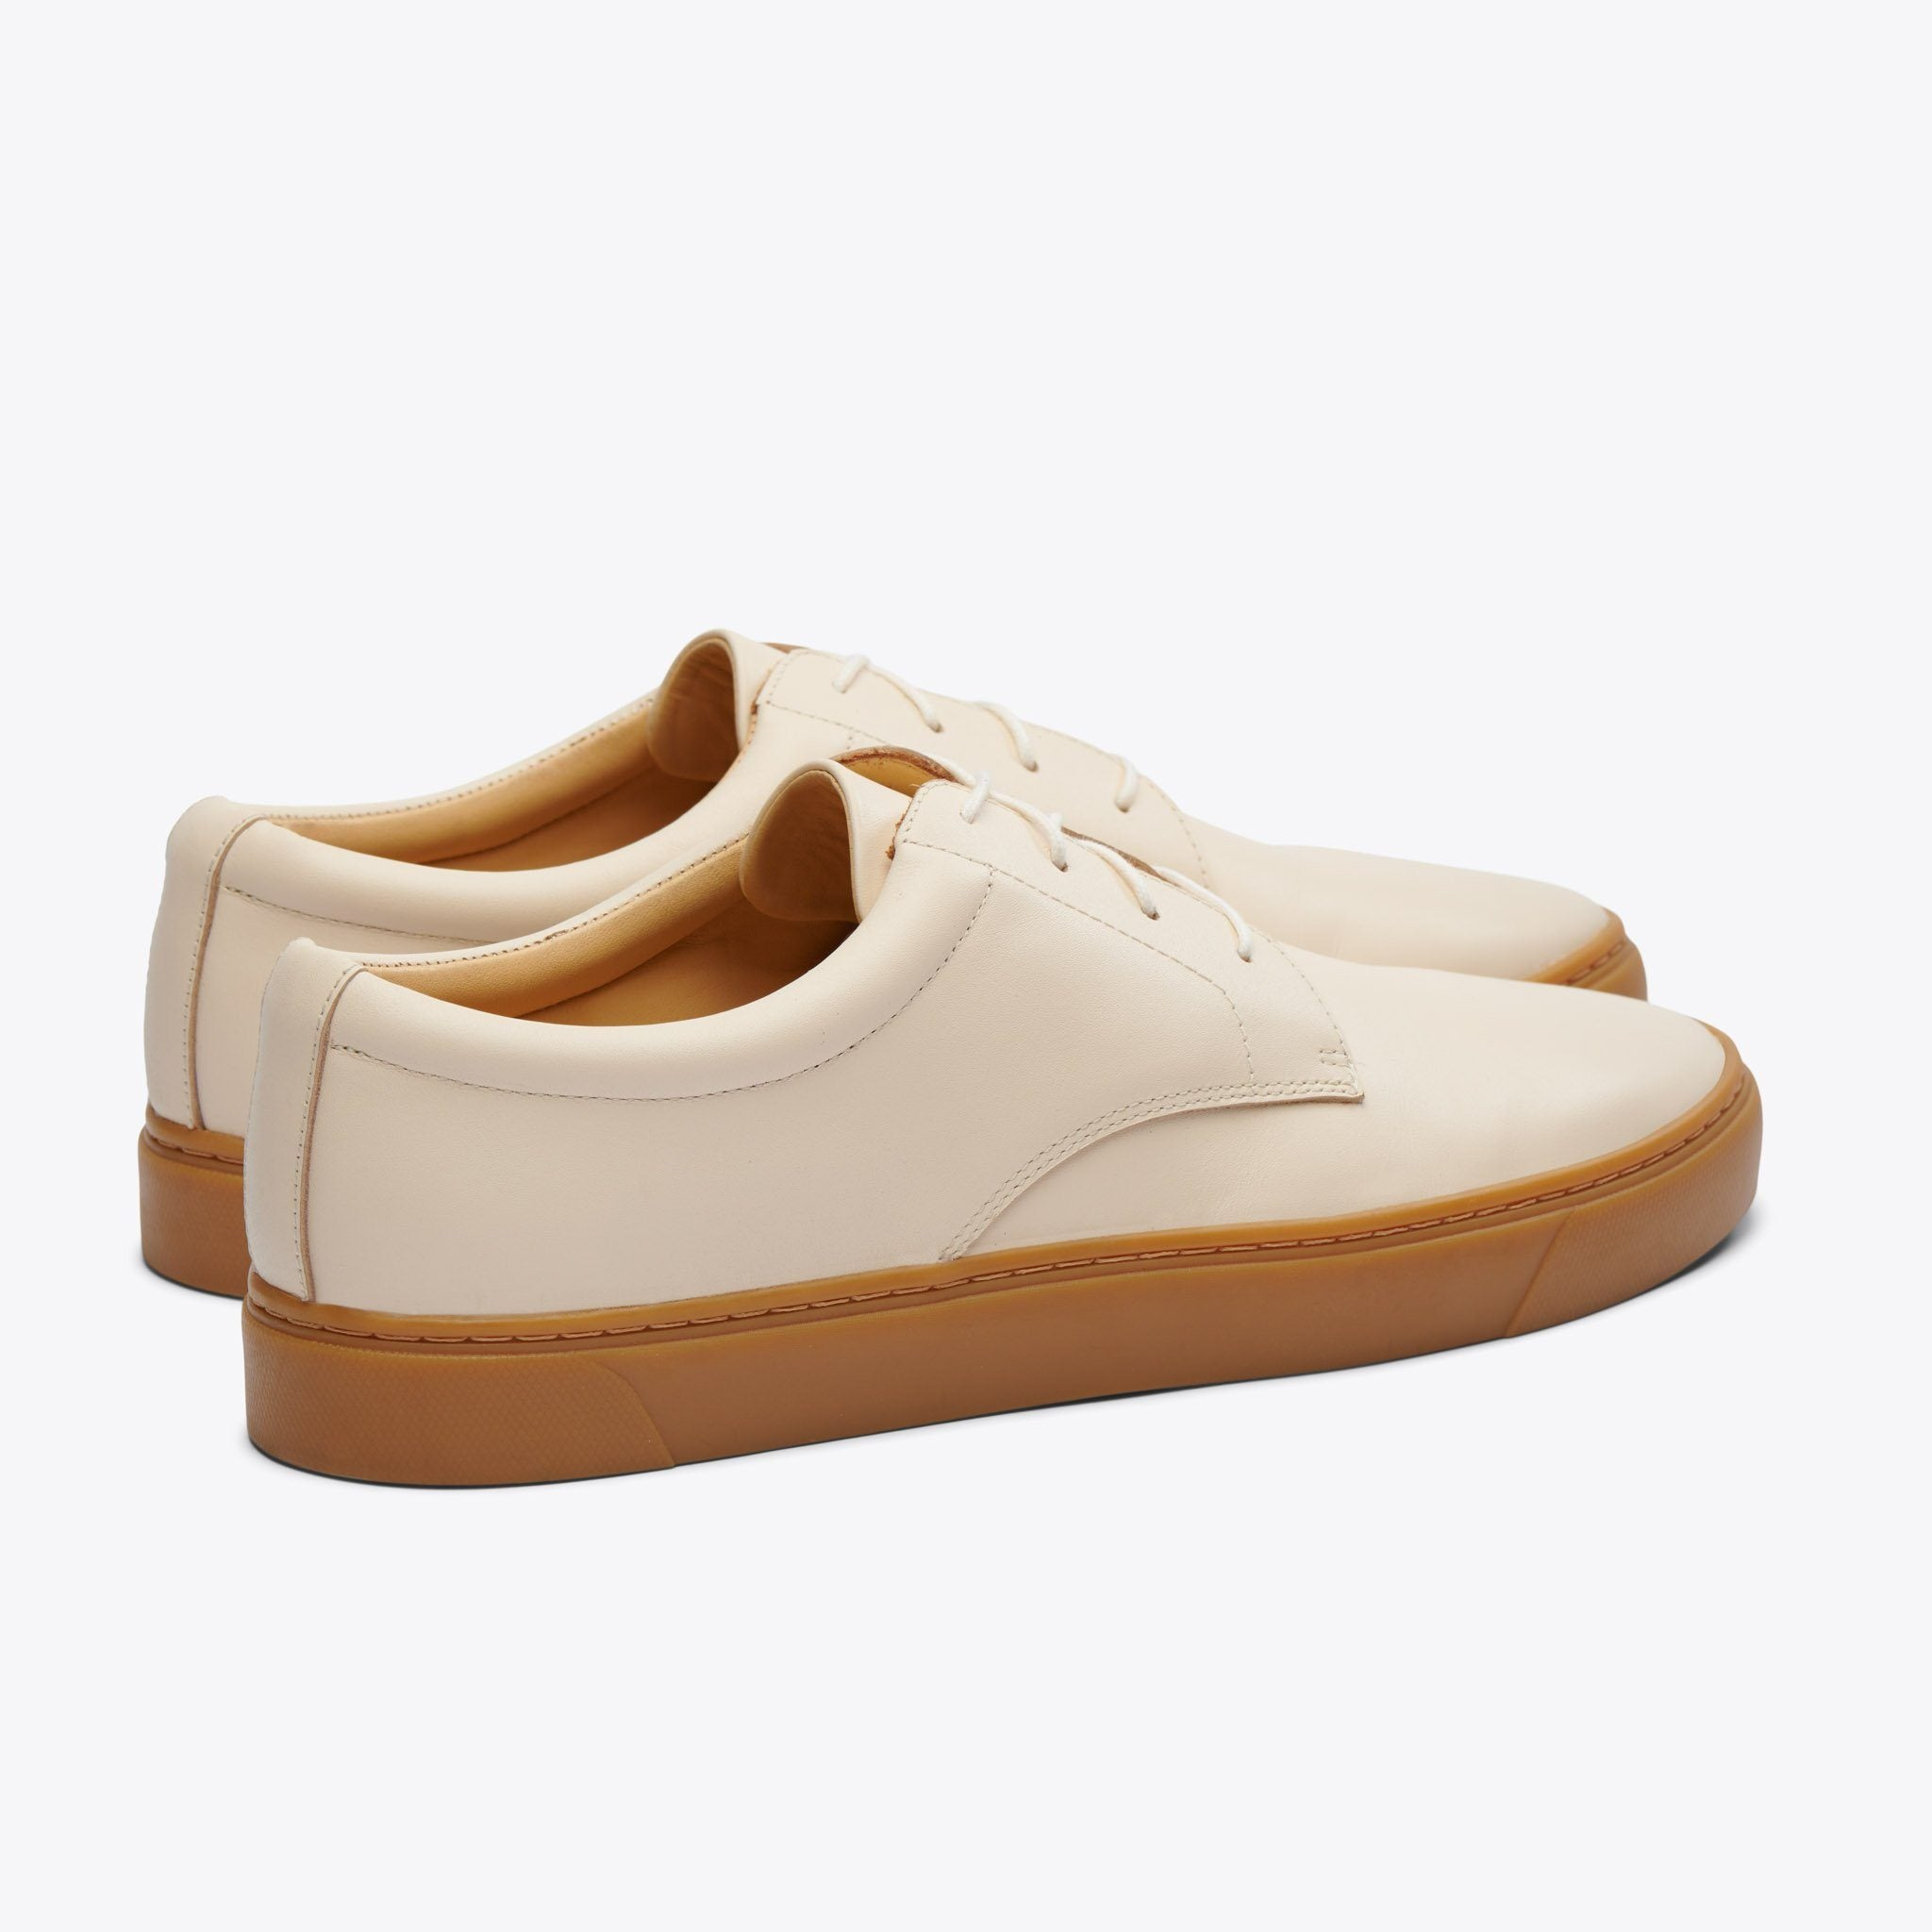 Nisolo - Diego Low Top Sneaker Bone/Gum